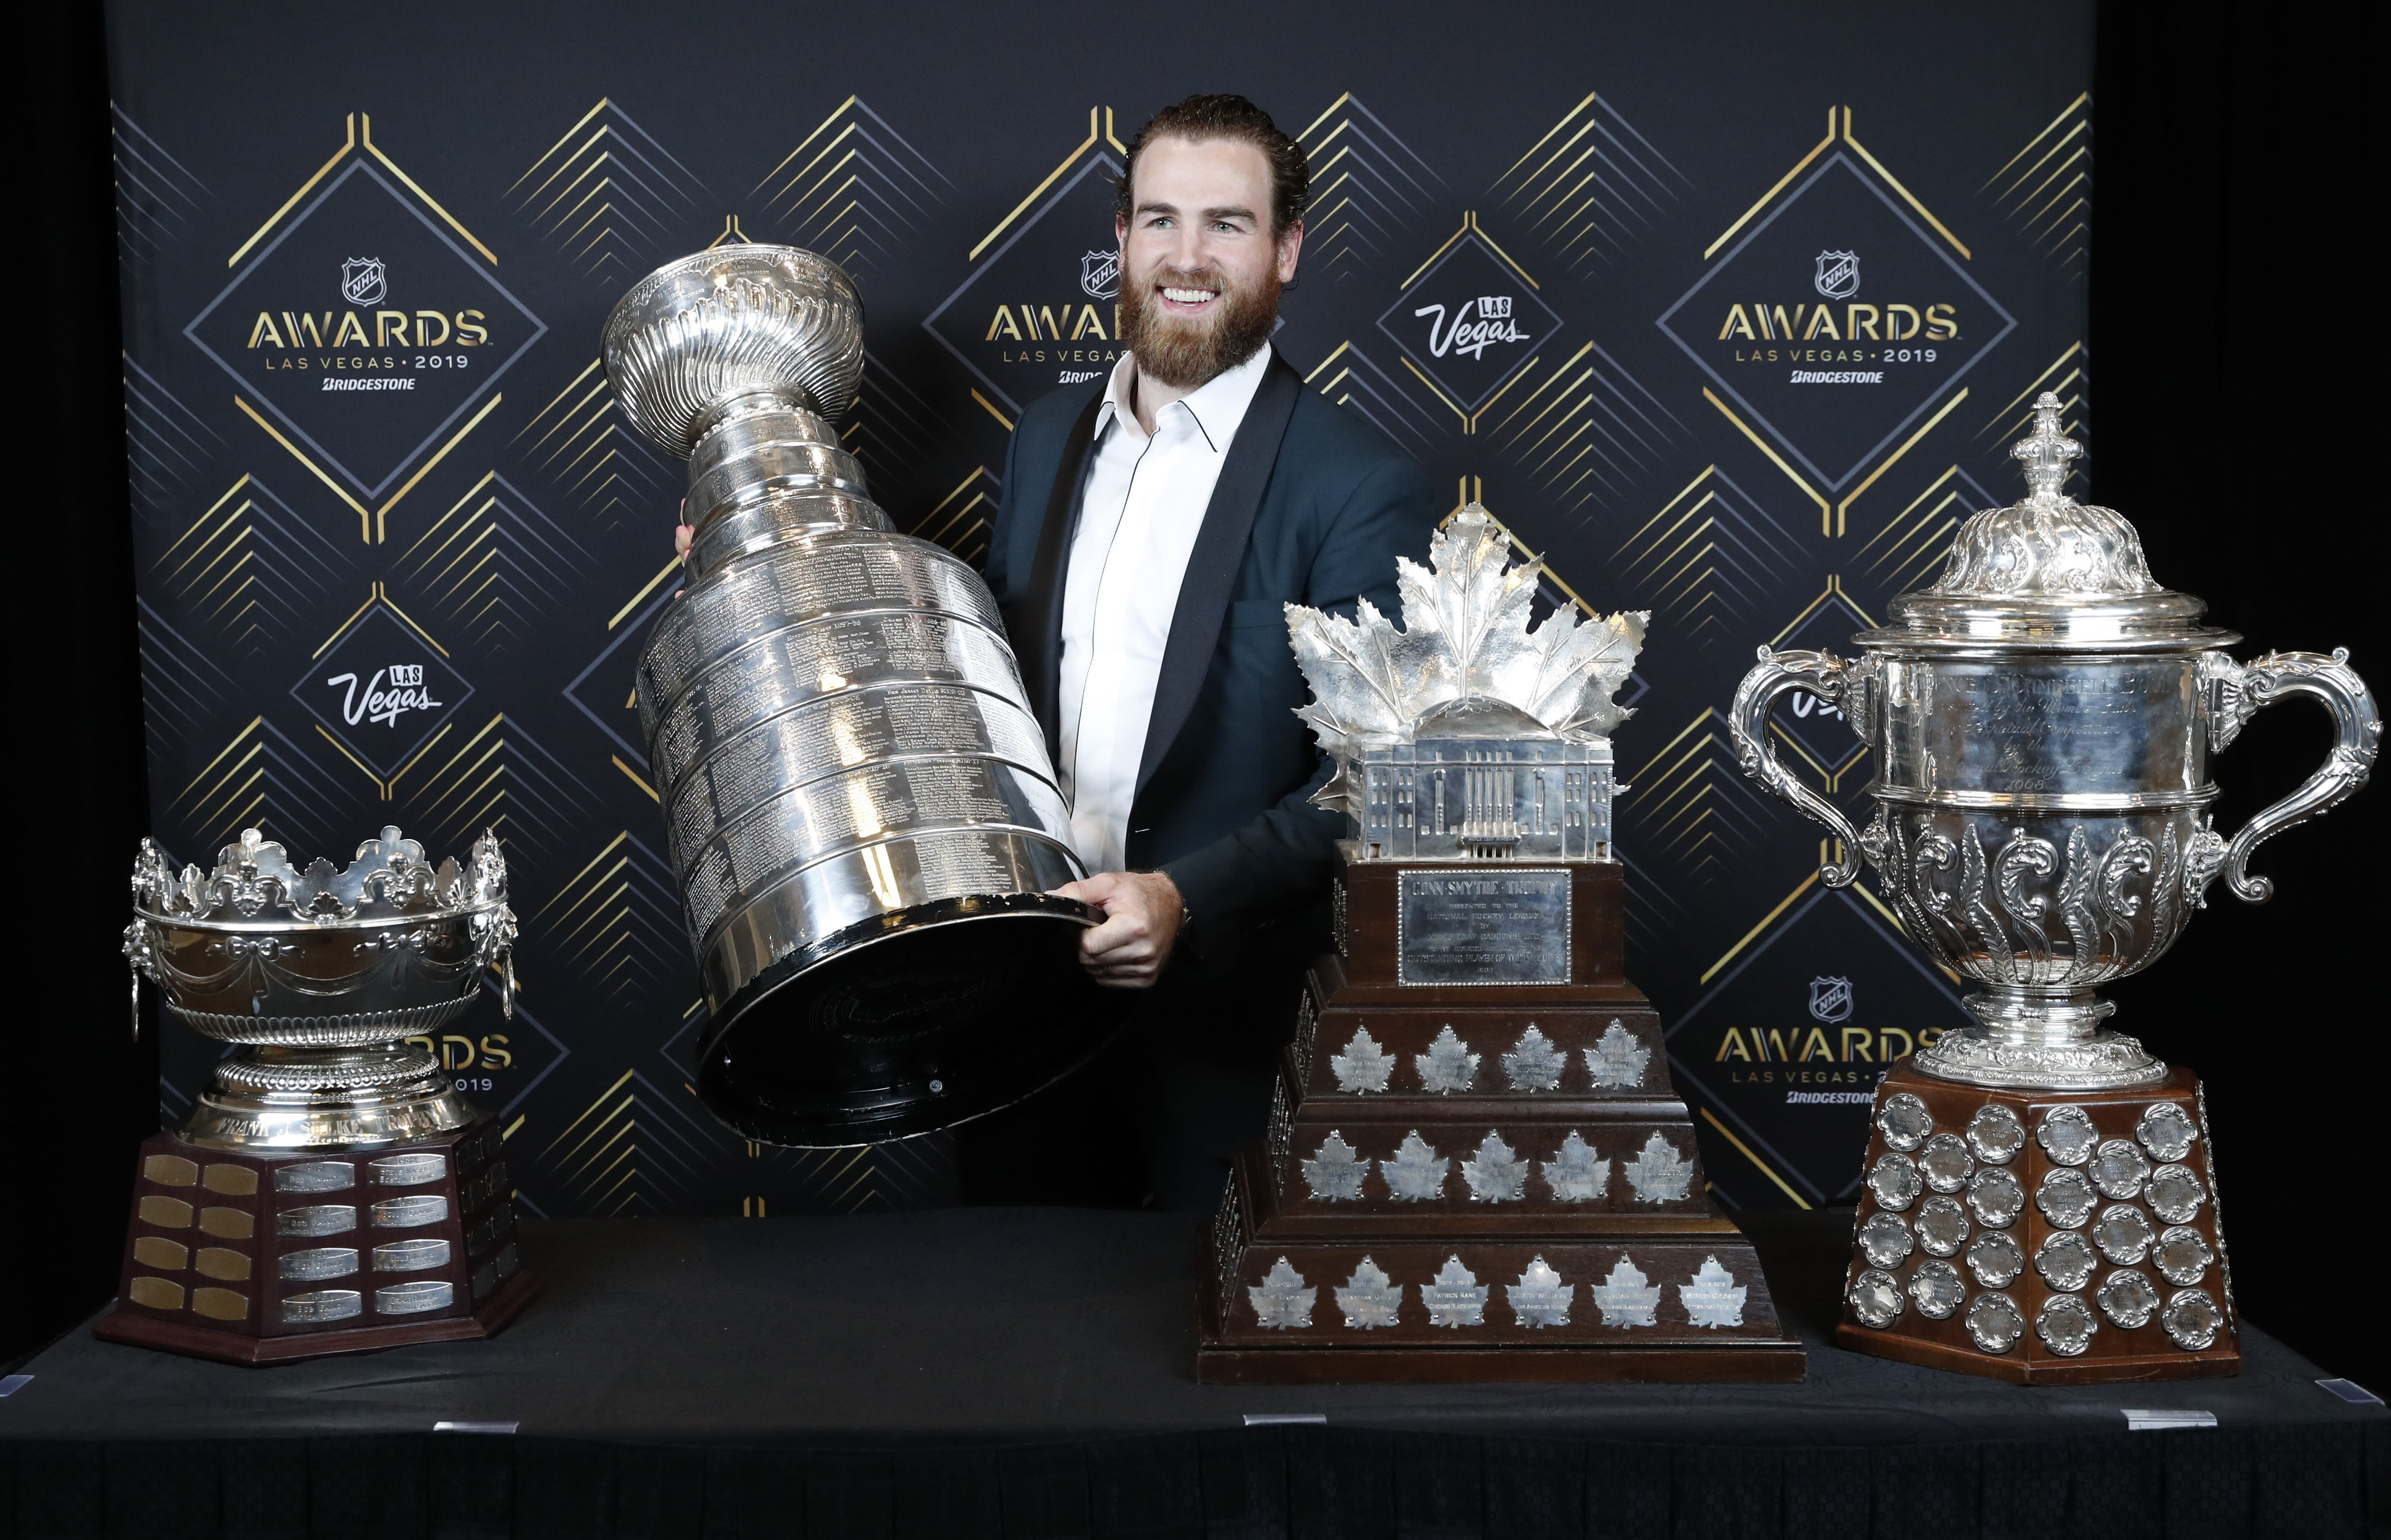 FILE - In this June 19, 2019, file photo, St. Louis Blues' Ryan O'Reilly poses with, from left, the Frank J. Selke Trophy, for top defensive forward; the Stanley Cup; the Conn Smythe Trophy, for MVP during the playoffs; and the Clarence S. Campbell Bowl, for the Western Conference playoff champions, at the NHL Awards in Las Vegas. Ryan O'Reilly stockpiled quite the hardware to show off at his Stanley Cup day. On display next to the Cup he helped the St. Louis Blues win were the Conn Smythe Trophy as playoff MVP and the Selke Trophy as the NHL's best defensive forward. Any player would gladly celebrate with those shiny centerpieces, though O'Reilly at 28 and on his third team is only now showing he's this kind of elite player.(AP Photo/John Locher, File)